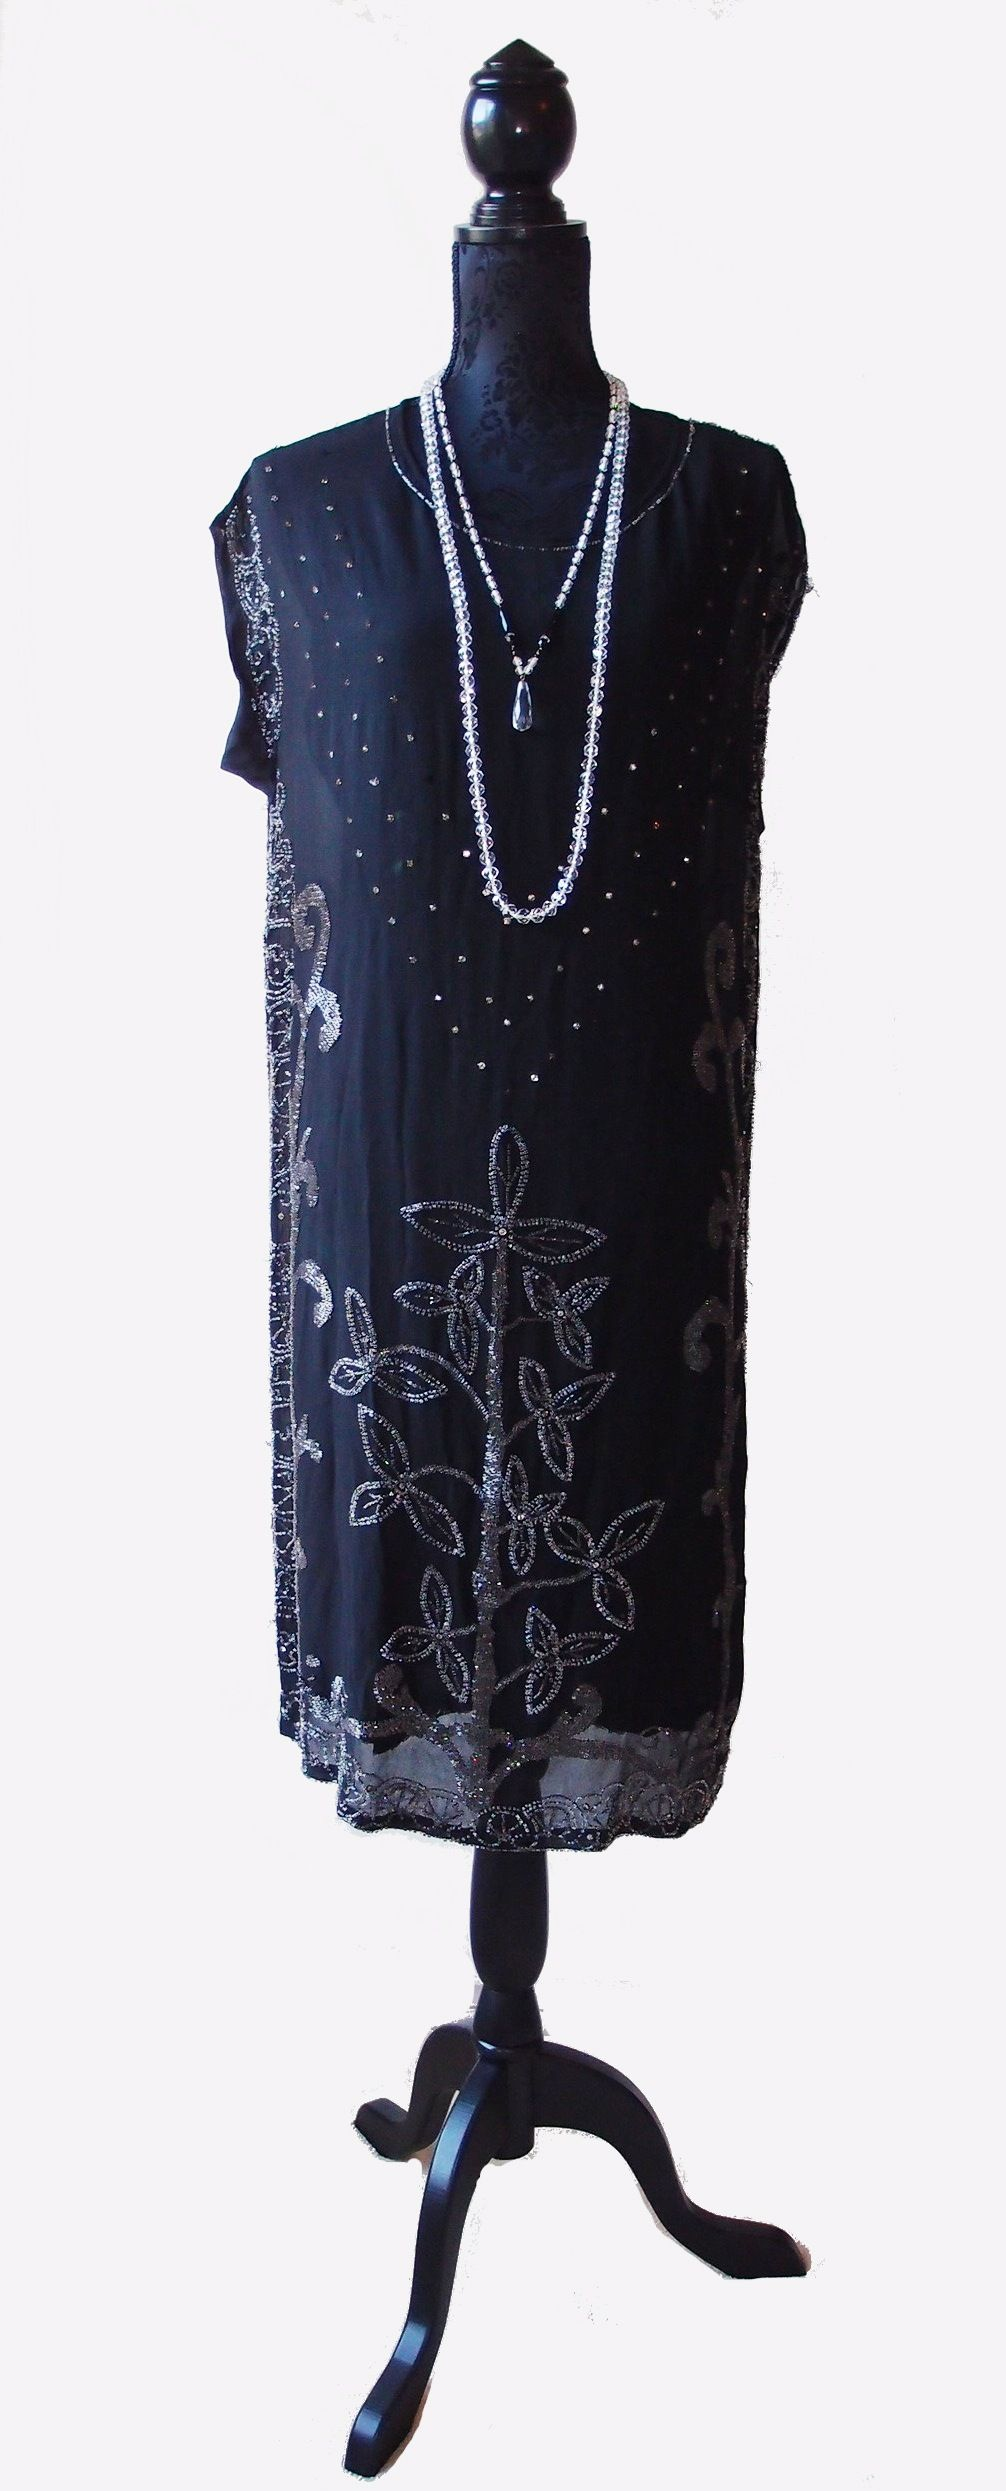 Black chiffon s dress with clear crystal beadwork and prongset